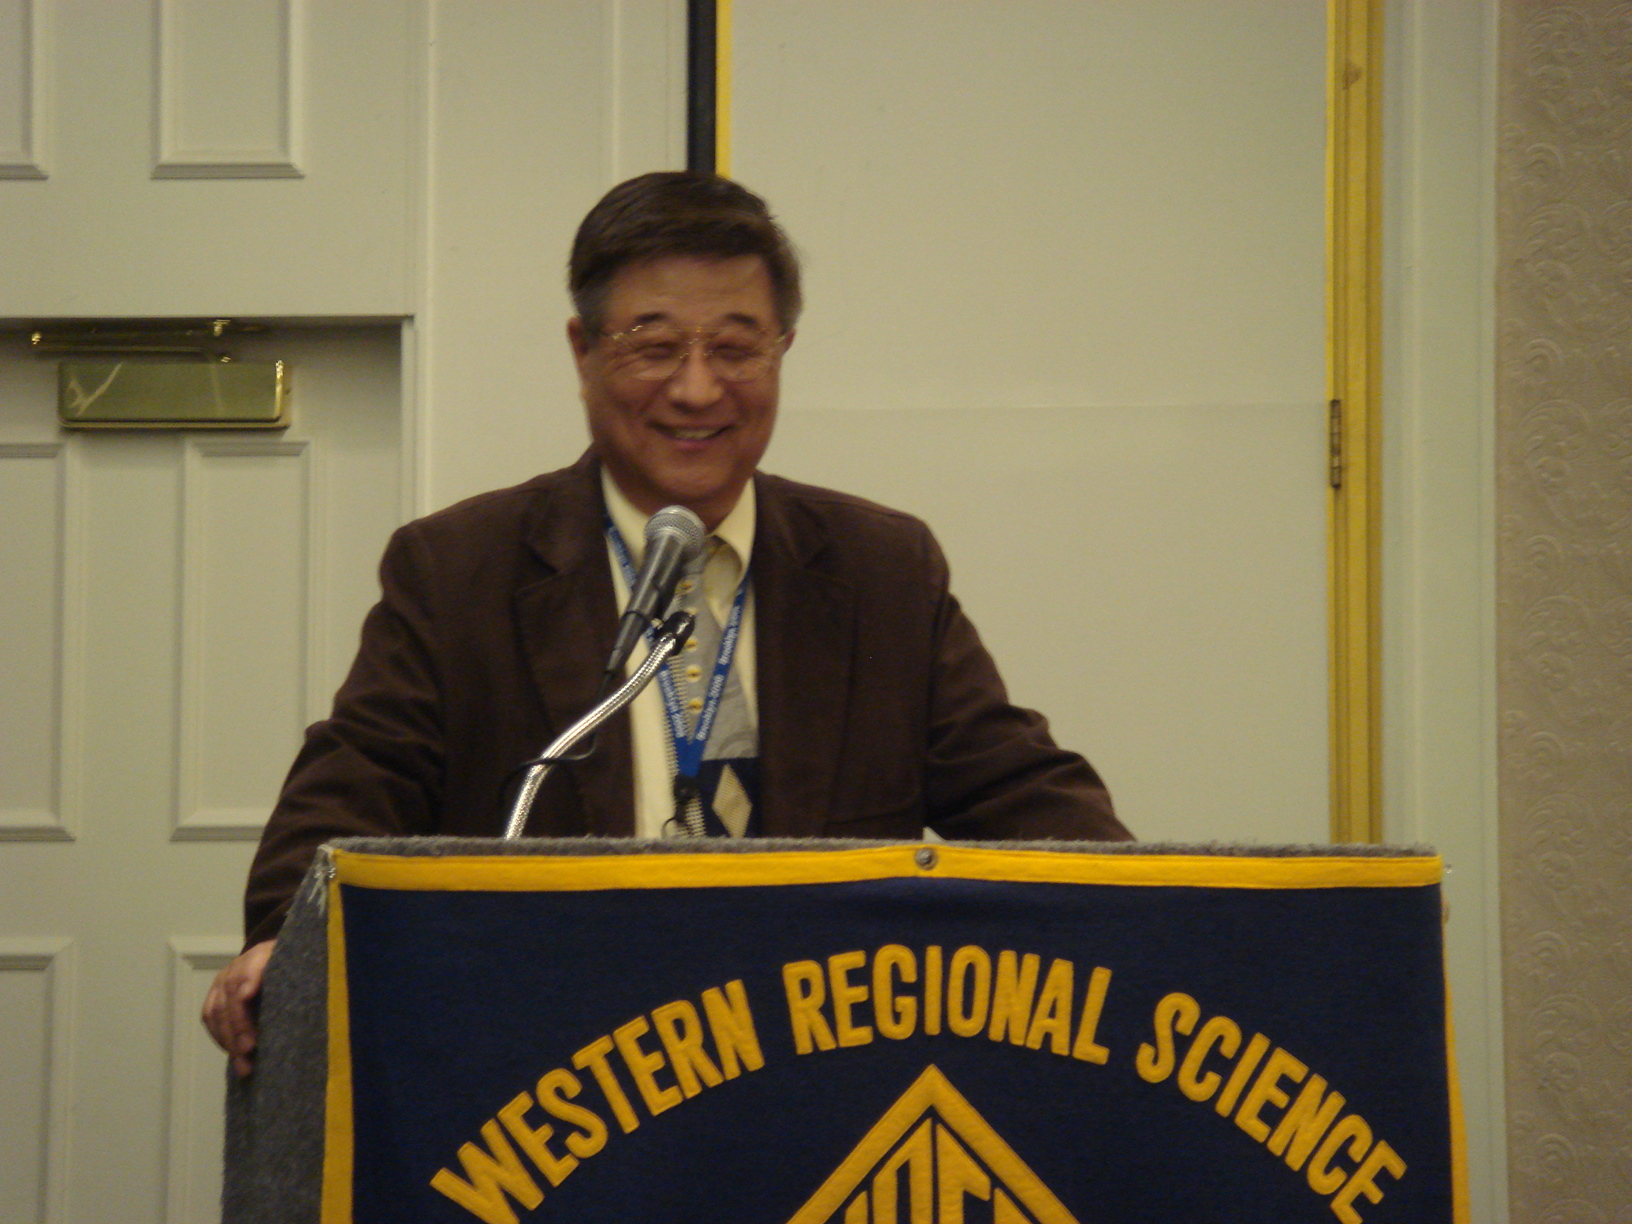 President Kim Chairs the Banquet Program